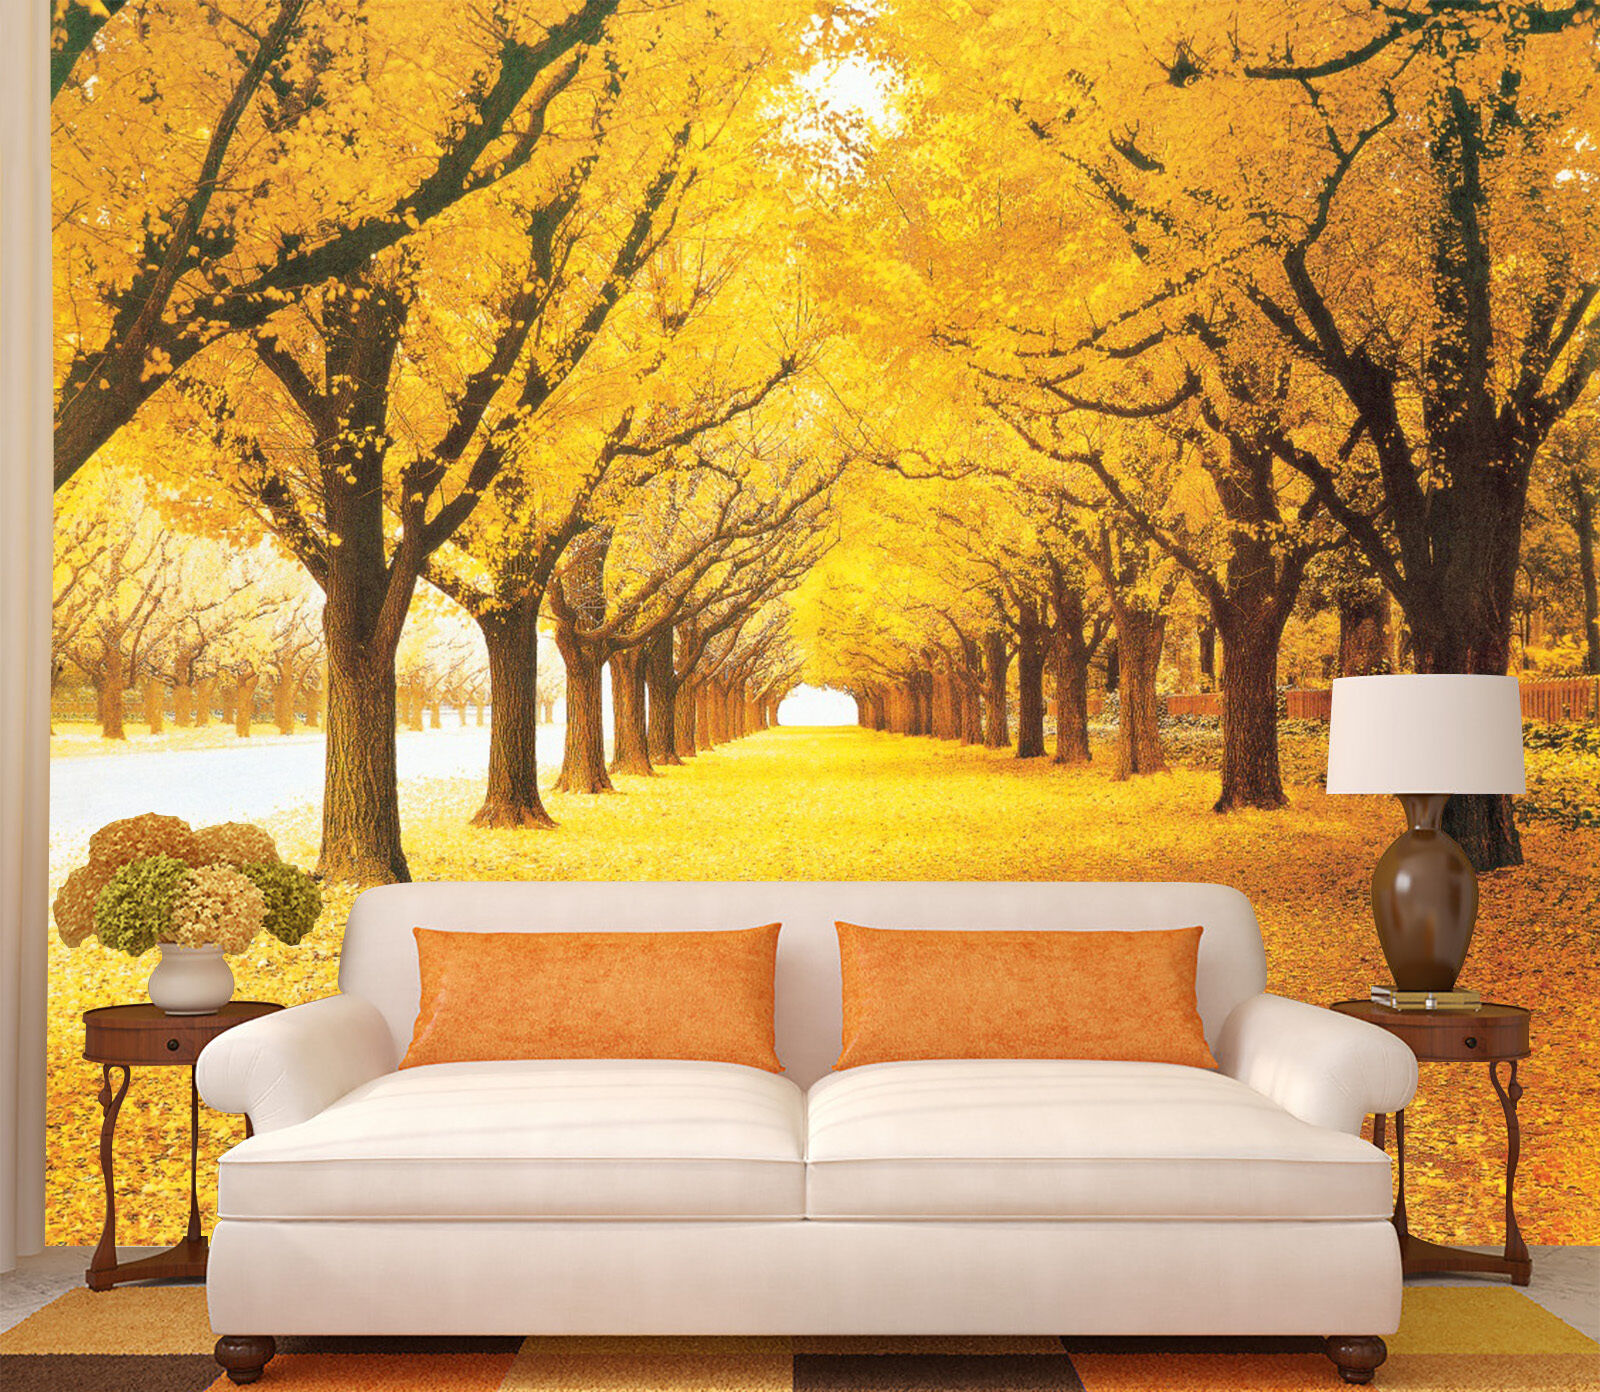 3D Yellow boulevard 55 Wall Paper Wall Print Decal Wall Deco Indoor wall Murals